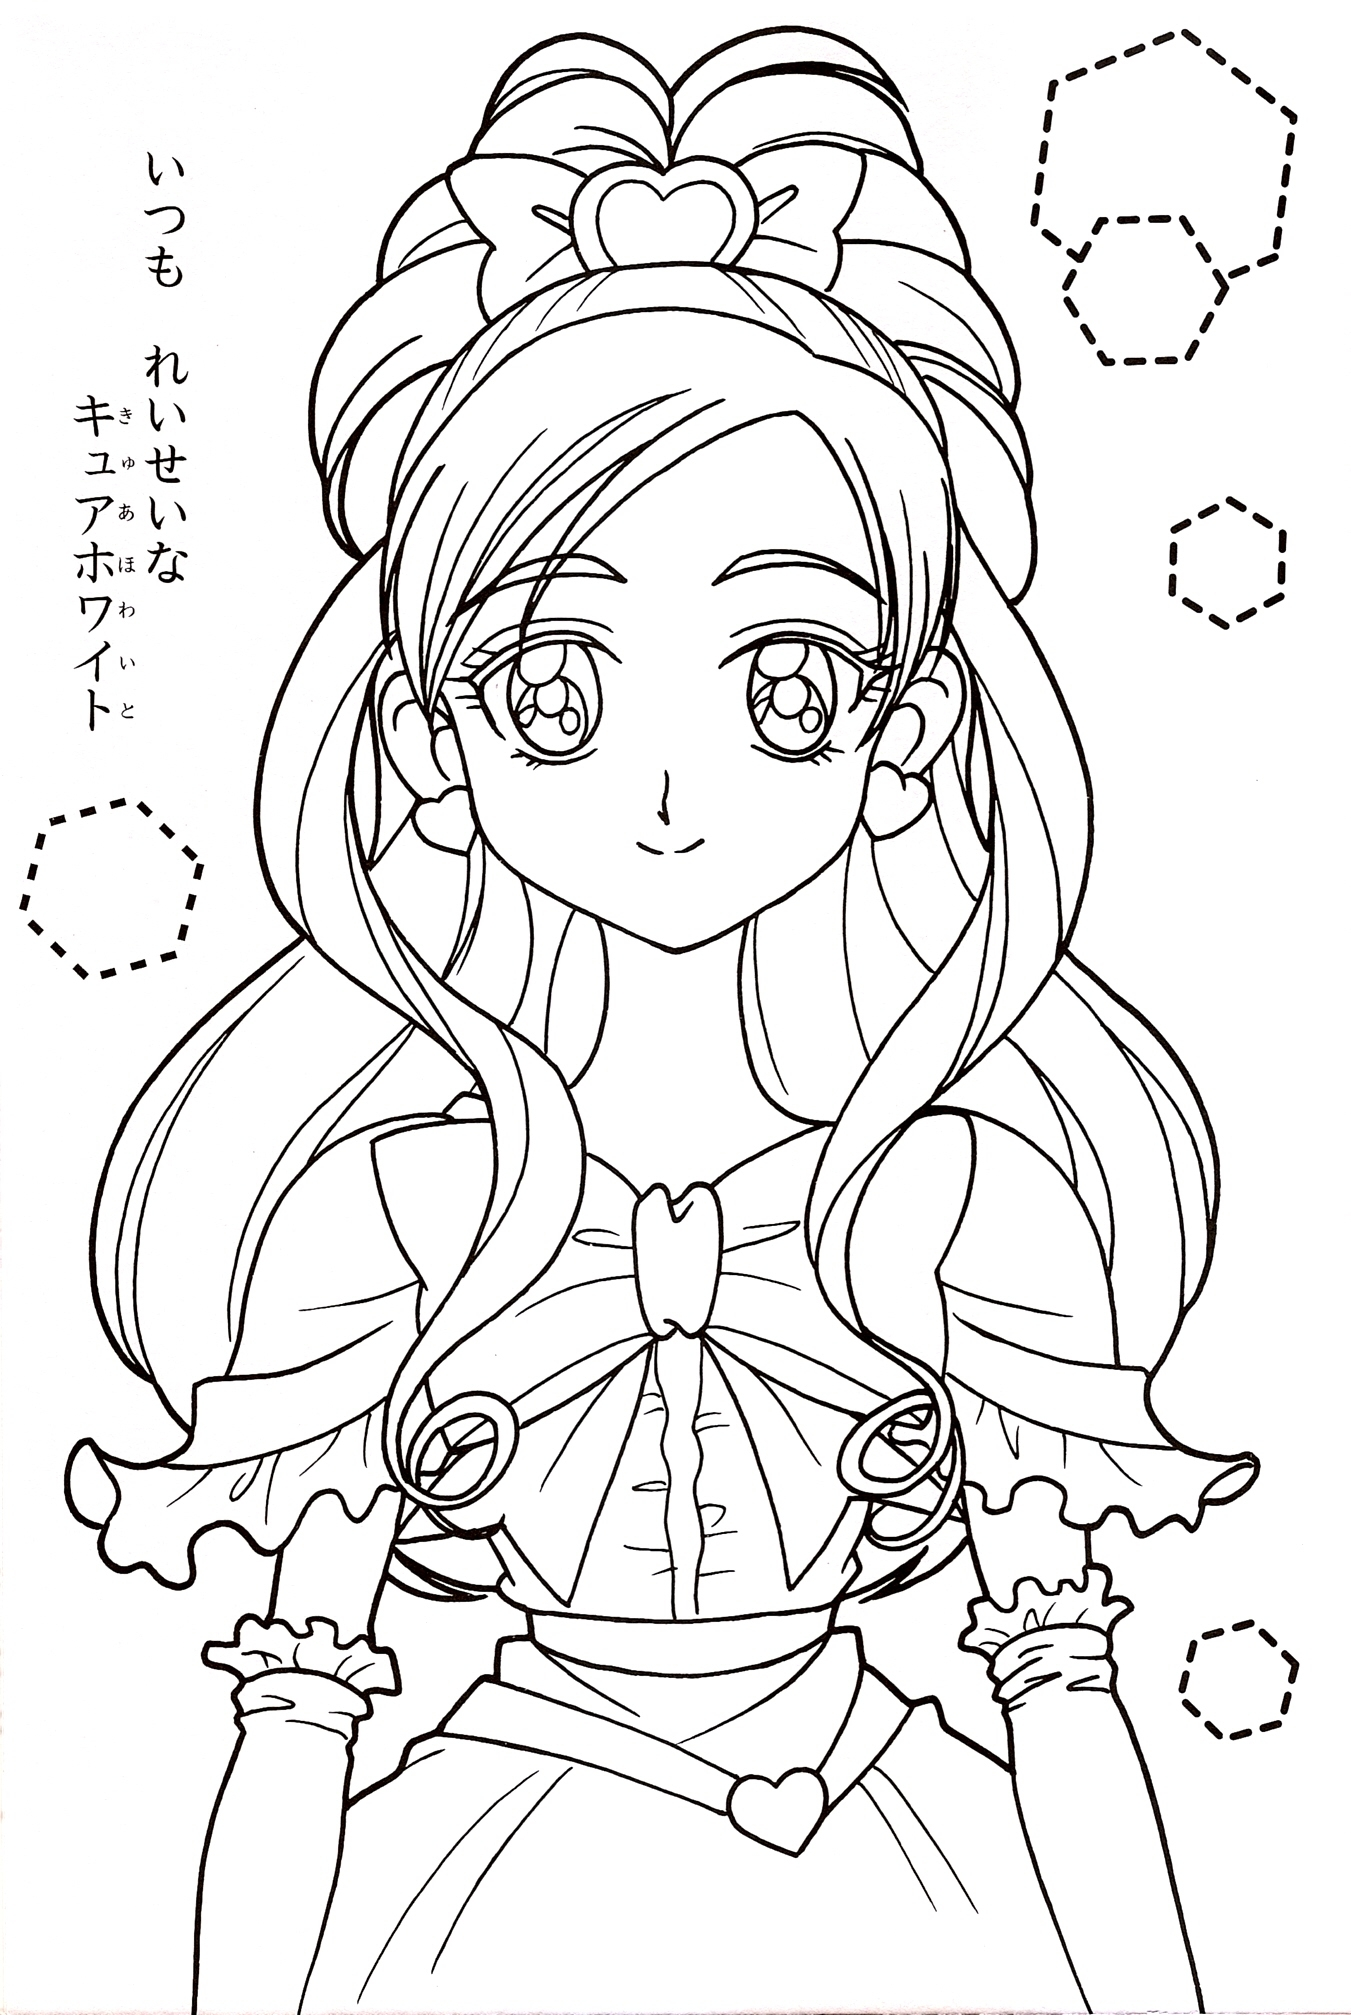 Pretty Cure Coloring Book